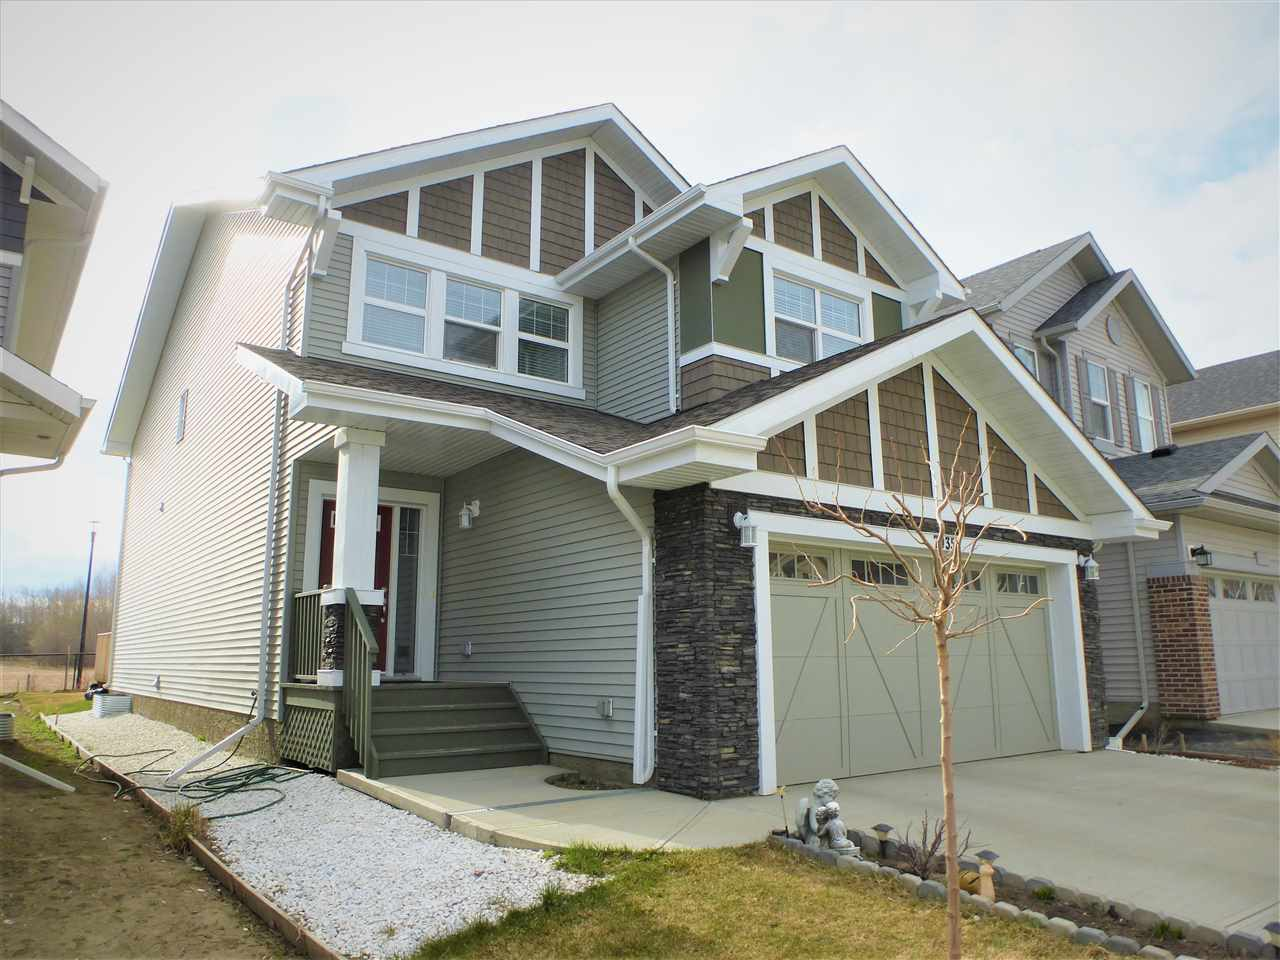 MLS® listing #E4155900 for sale located at 7935 ERASMUS Crescent NW